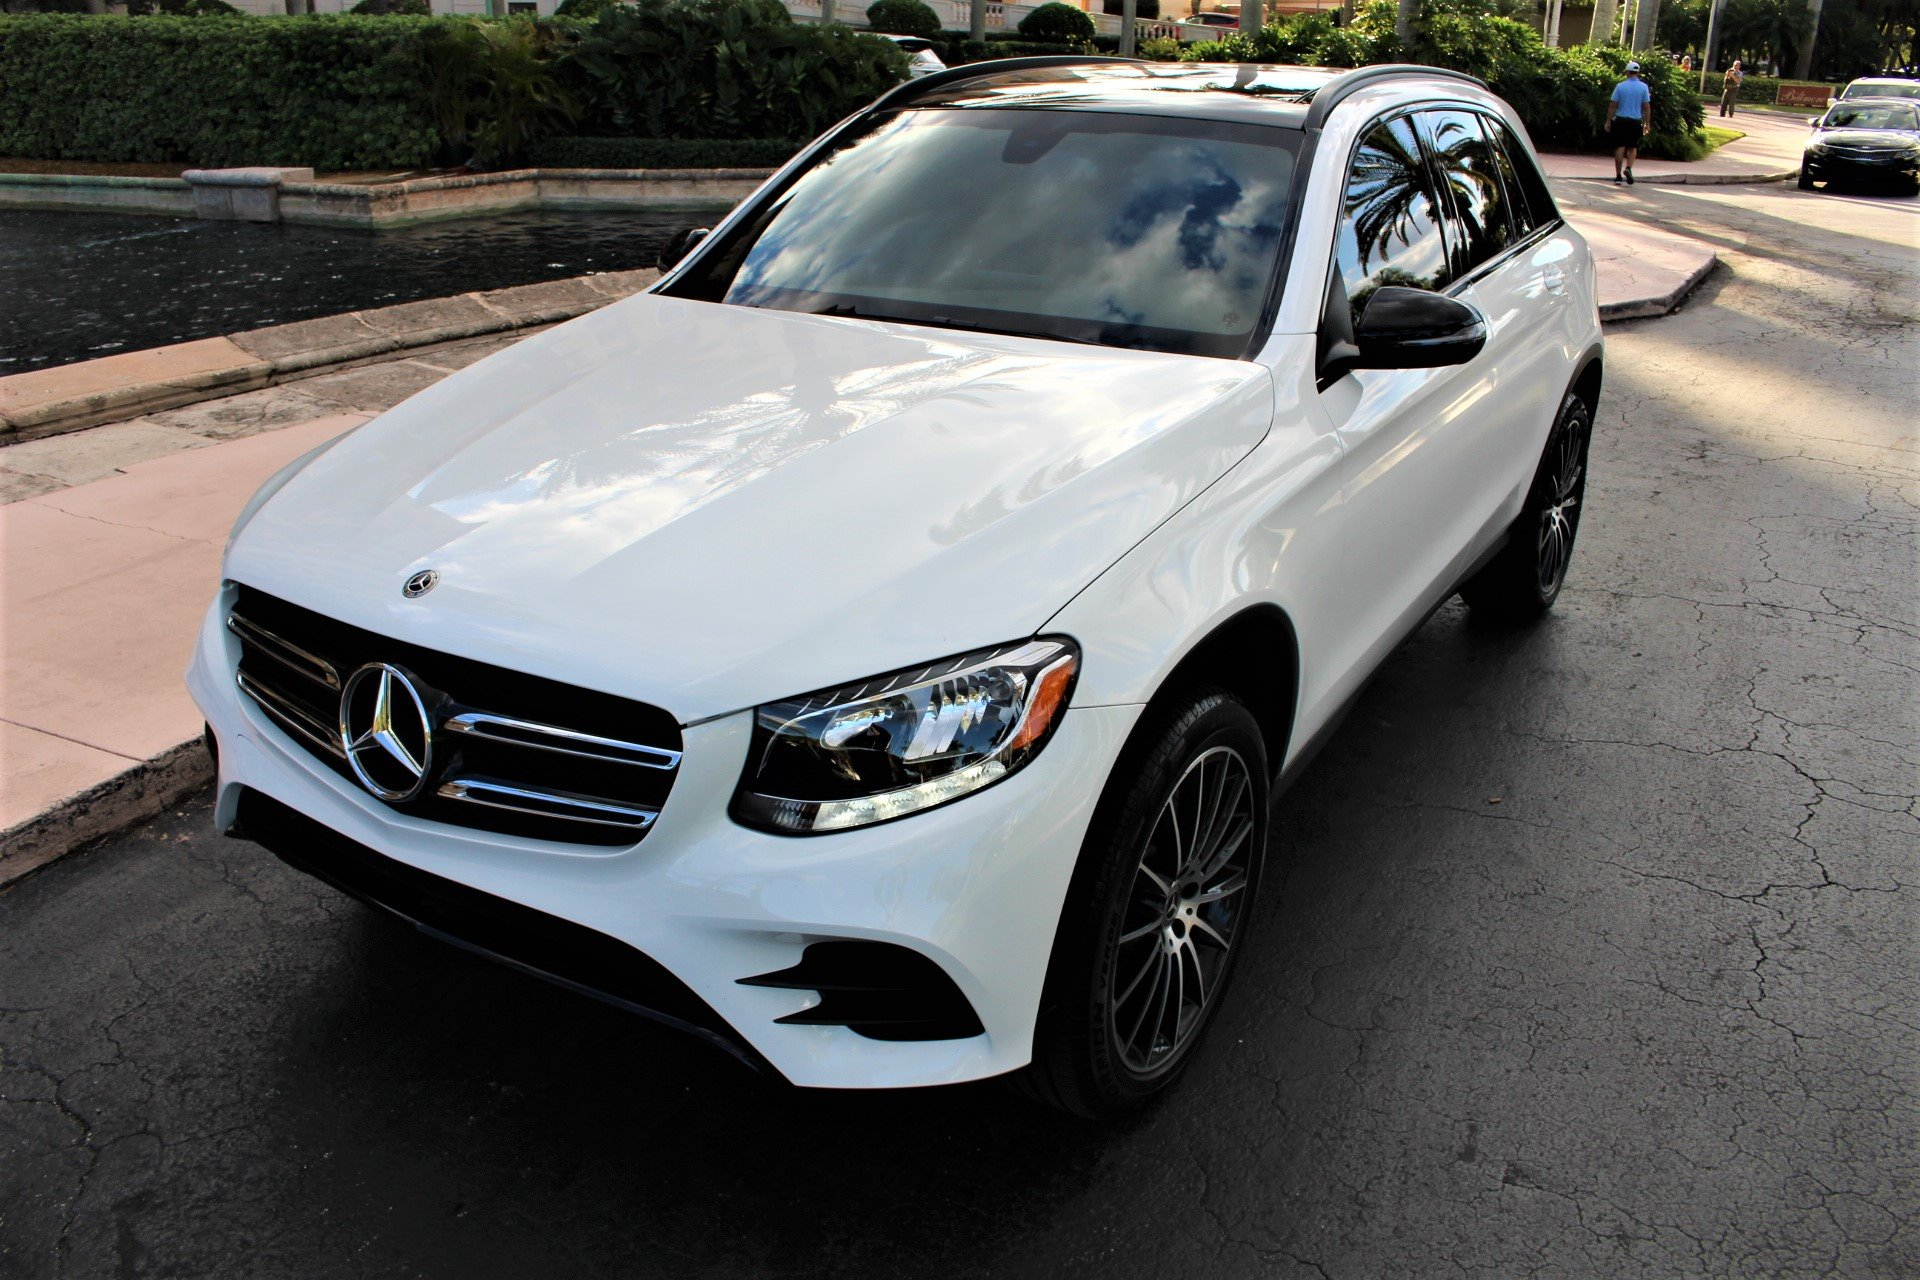 Used 2019 Mercedes-Benz GLC GLC 300 for sale $36,850 at The Gables Sports Cars in Miami FL 33146 4